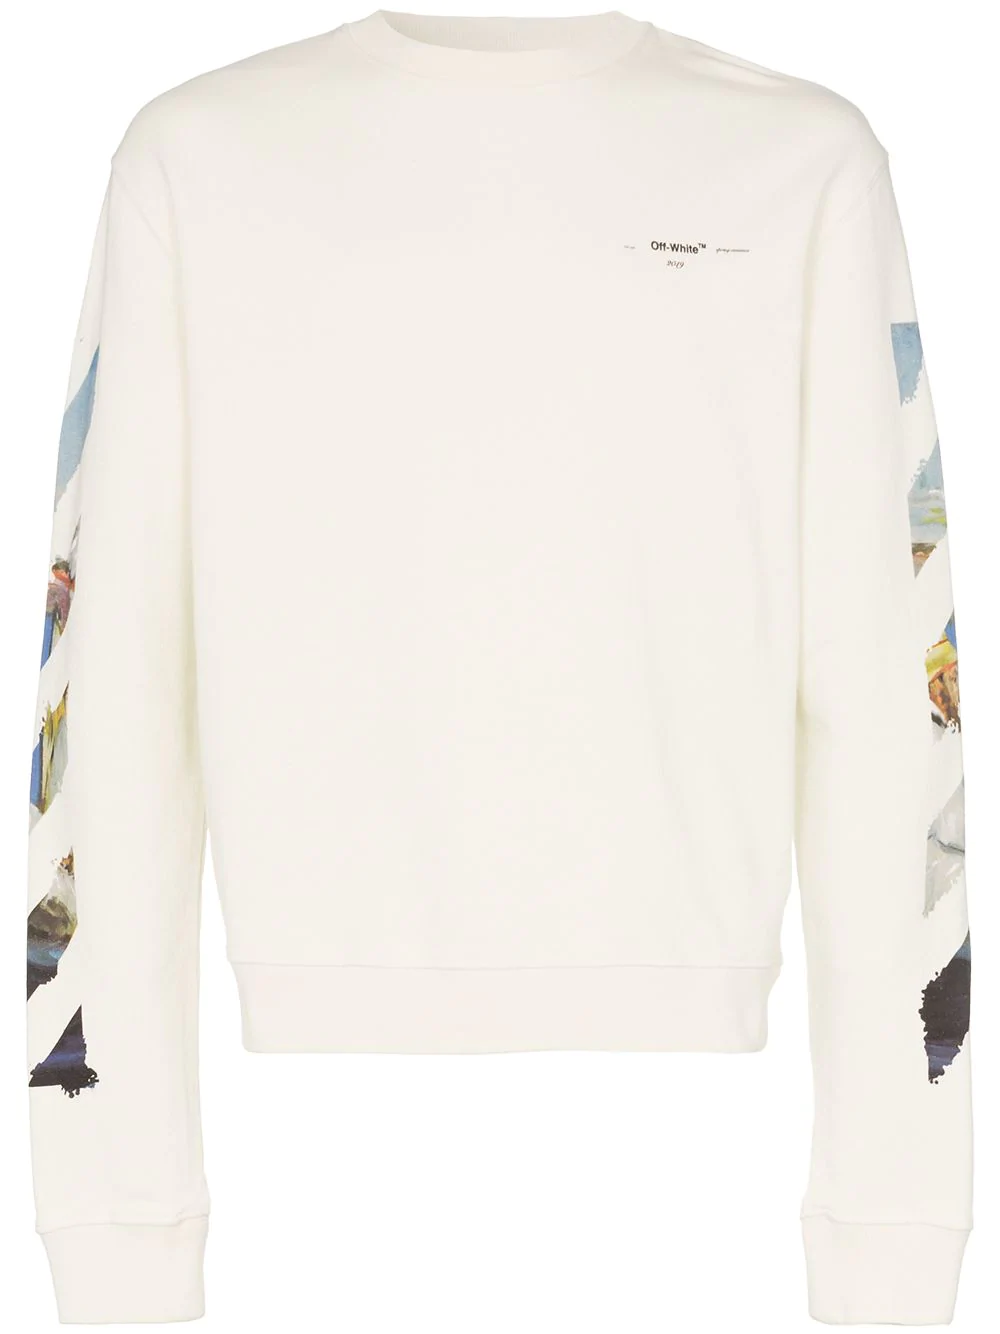 0af0bee0 Off-White Diag Colored Arrows Sweatshirt In White | ModeSens